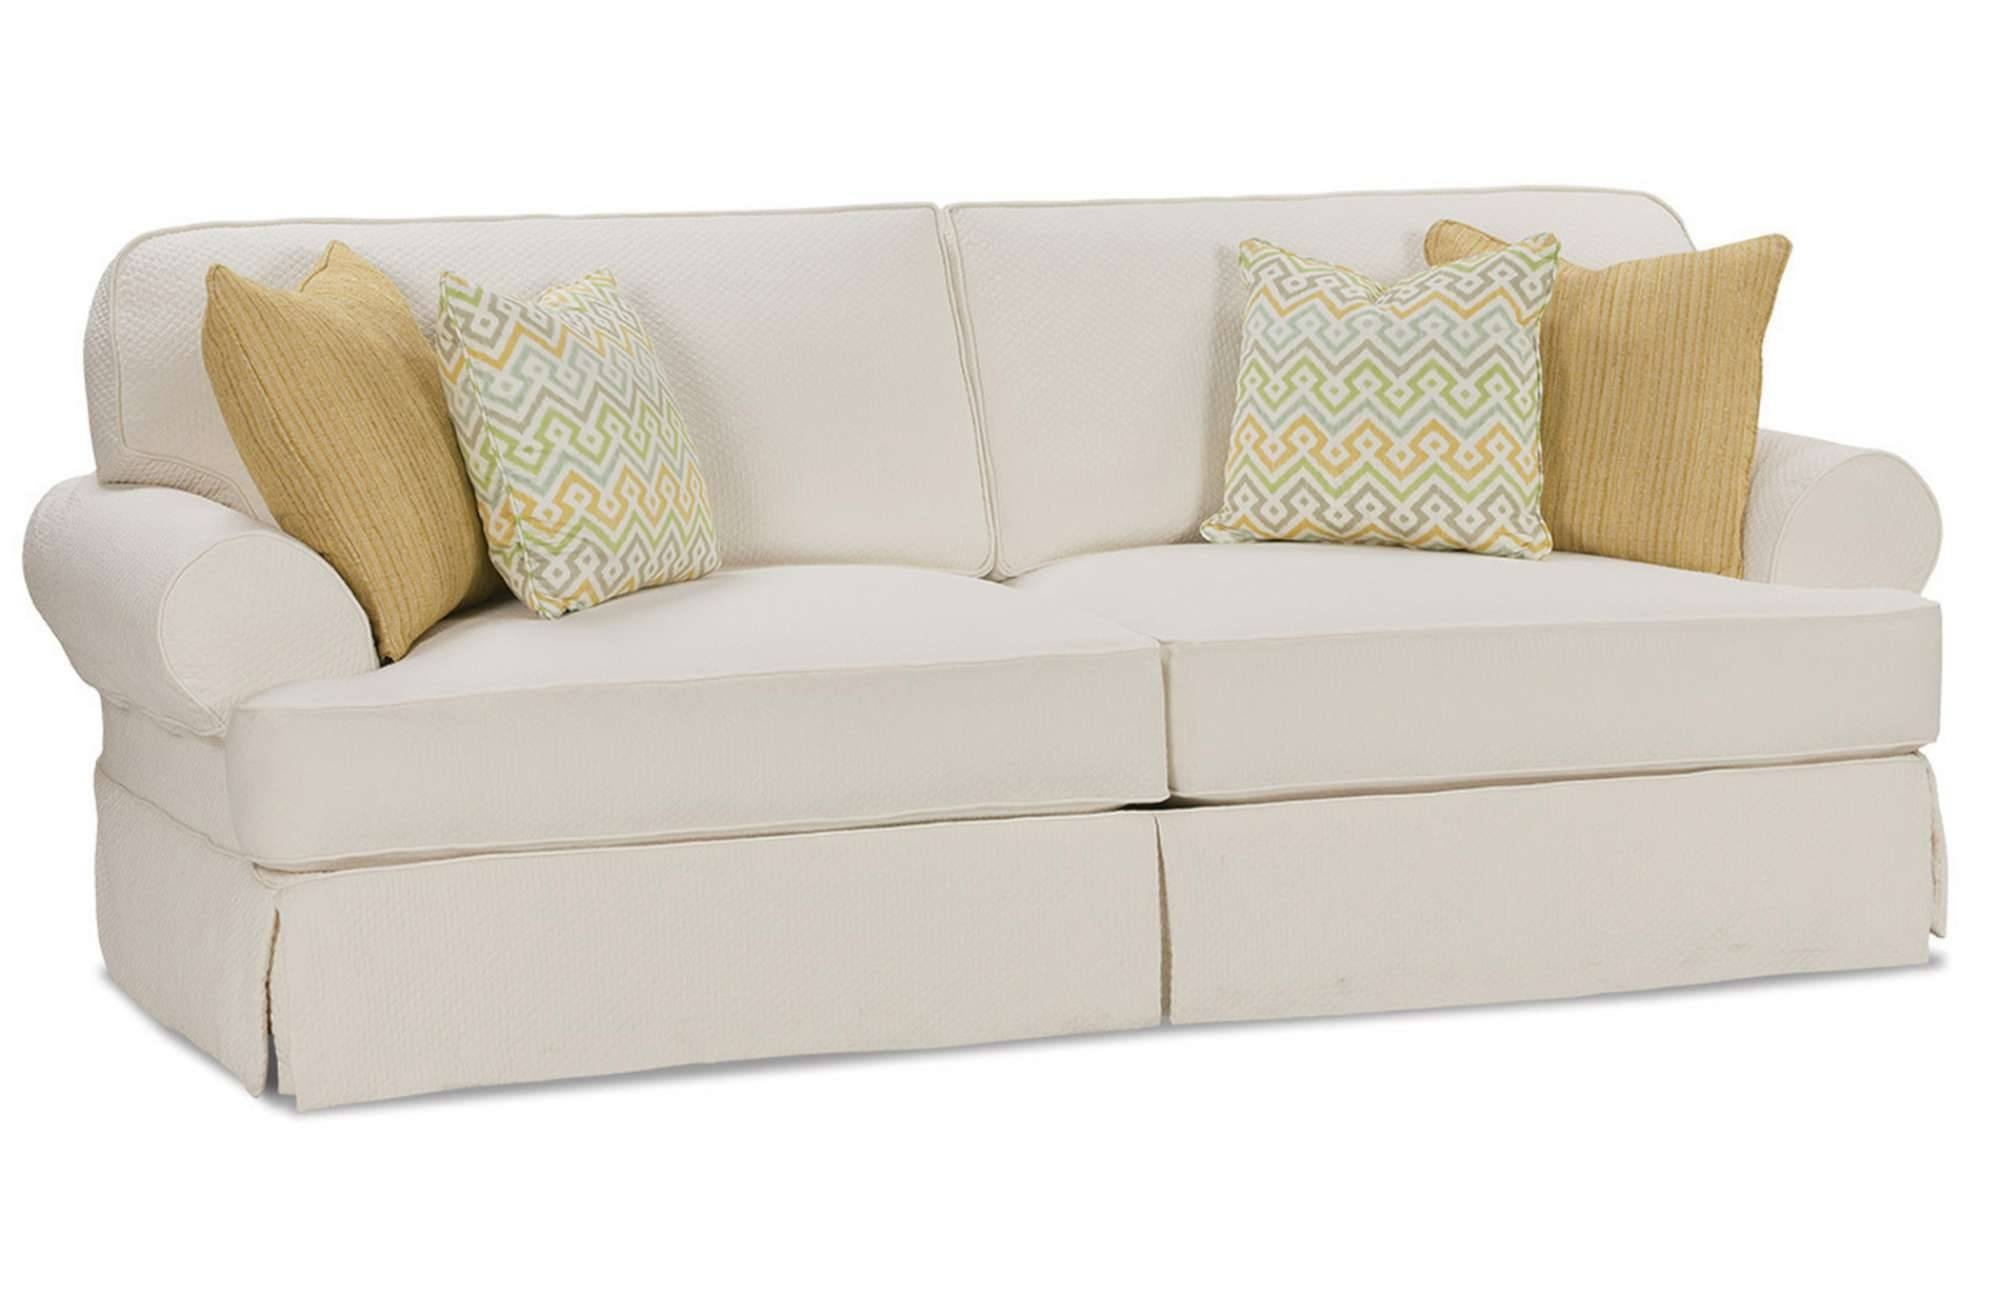 Beautiful Sleeper Sofa Slipcover 28 In Sofas And Couches Set With pertaining to Slipcovers For Sleeper Sofas (Image 3 of 15)